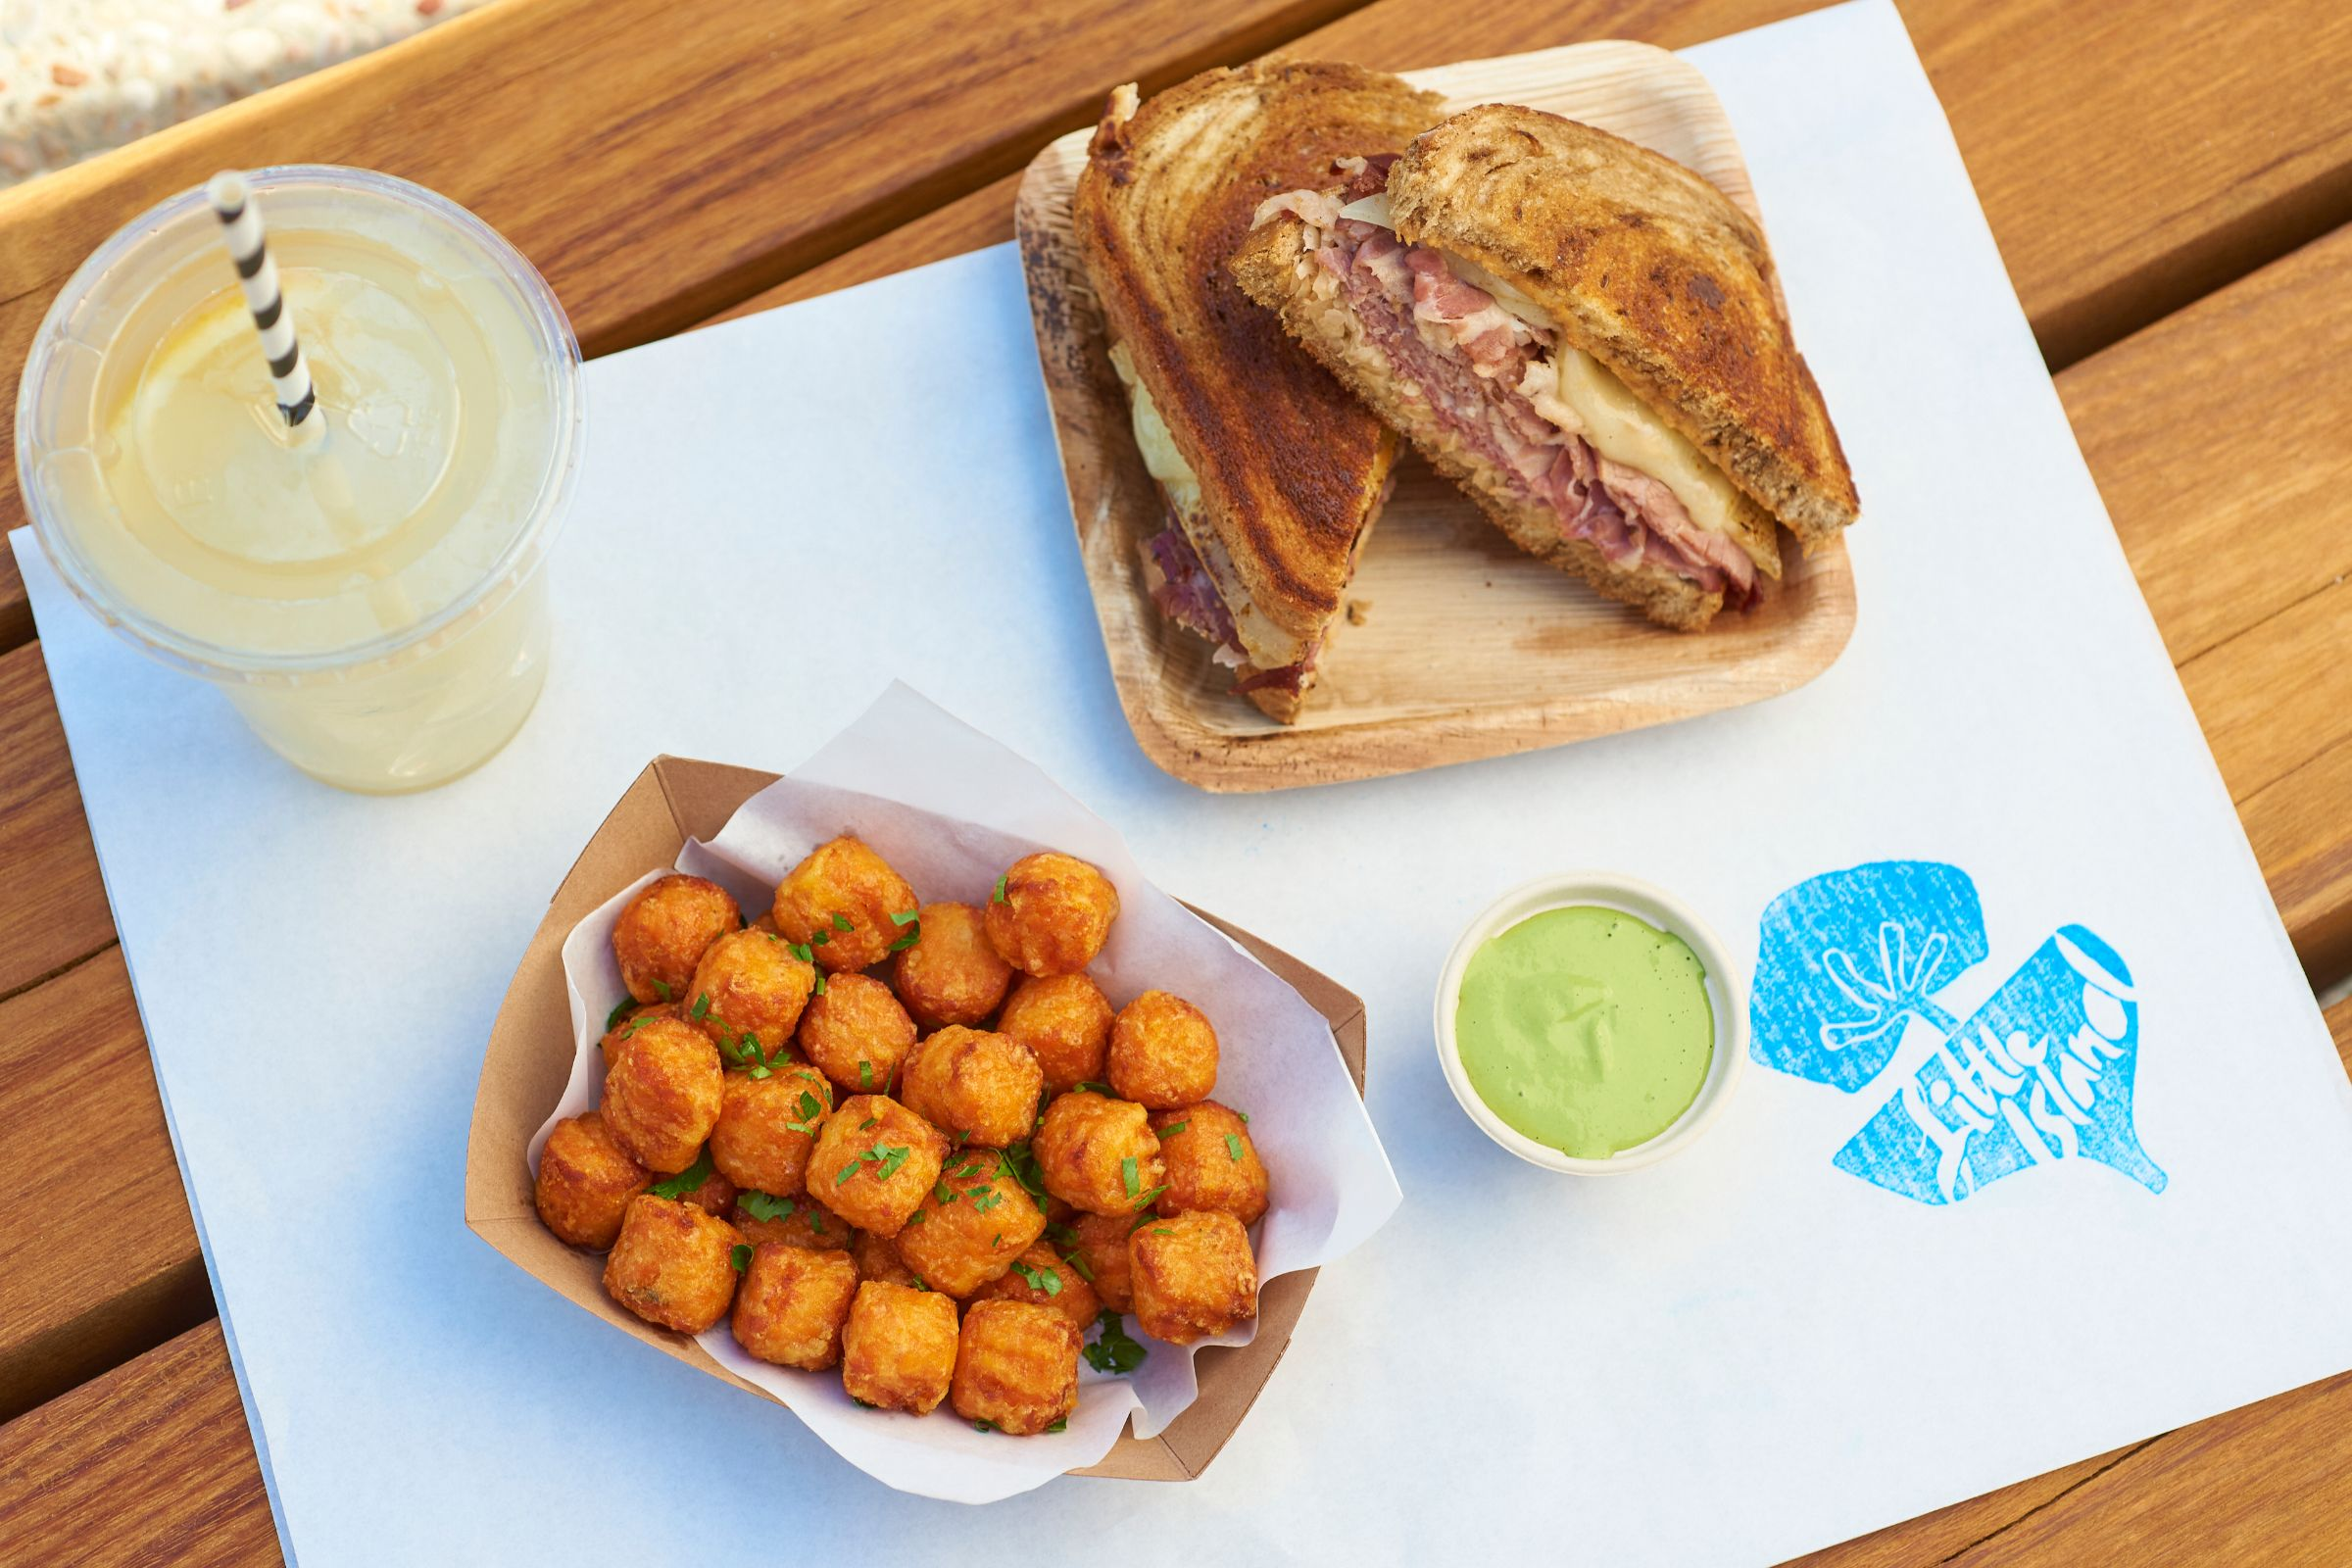 A drink, tater tots, and a sandwich on a table